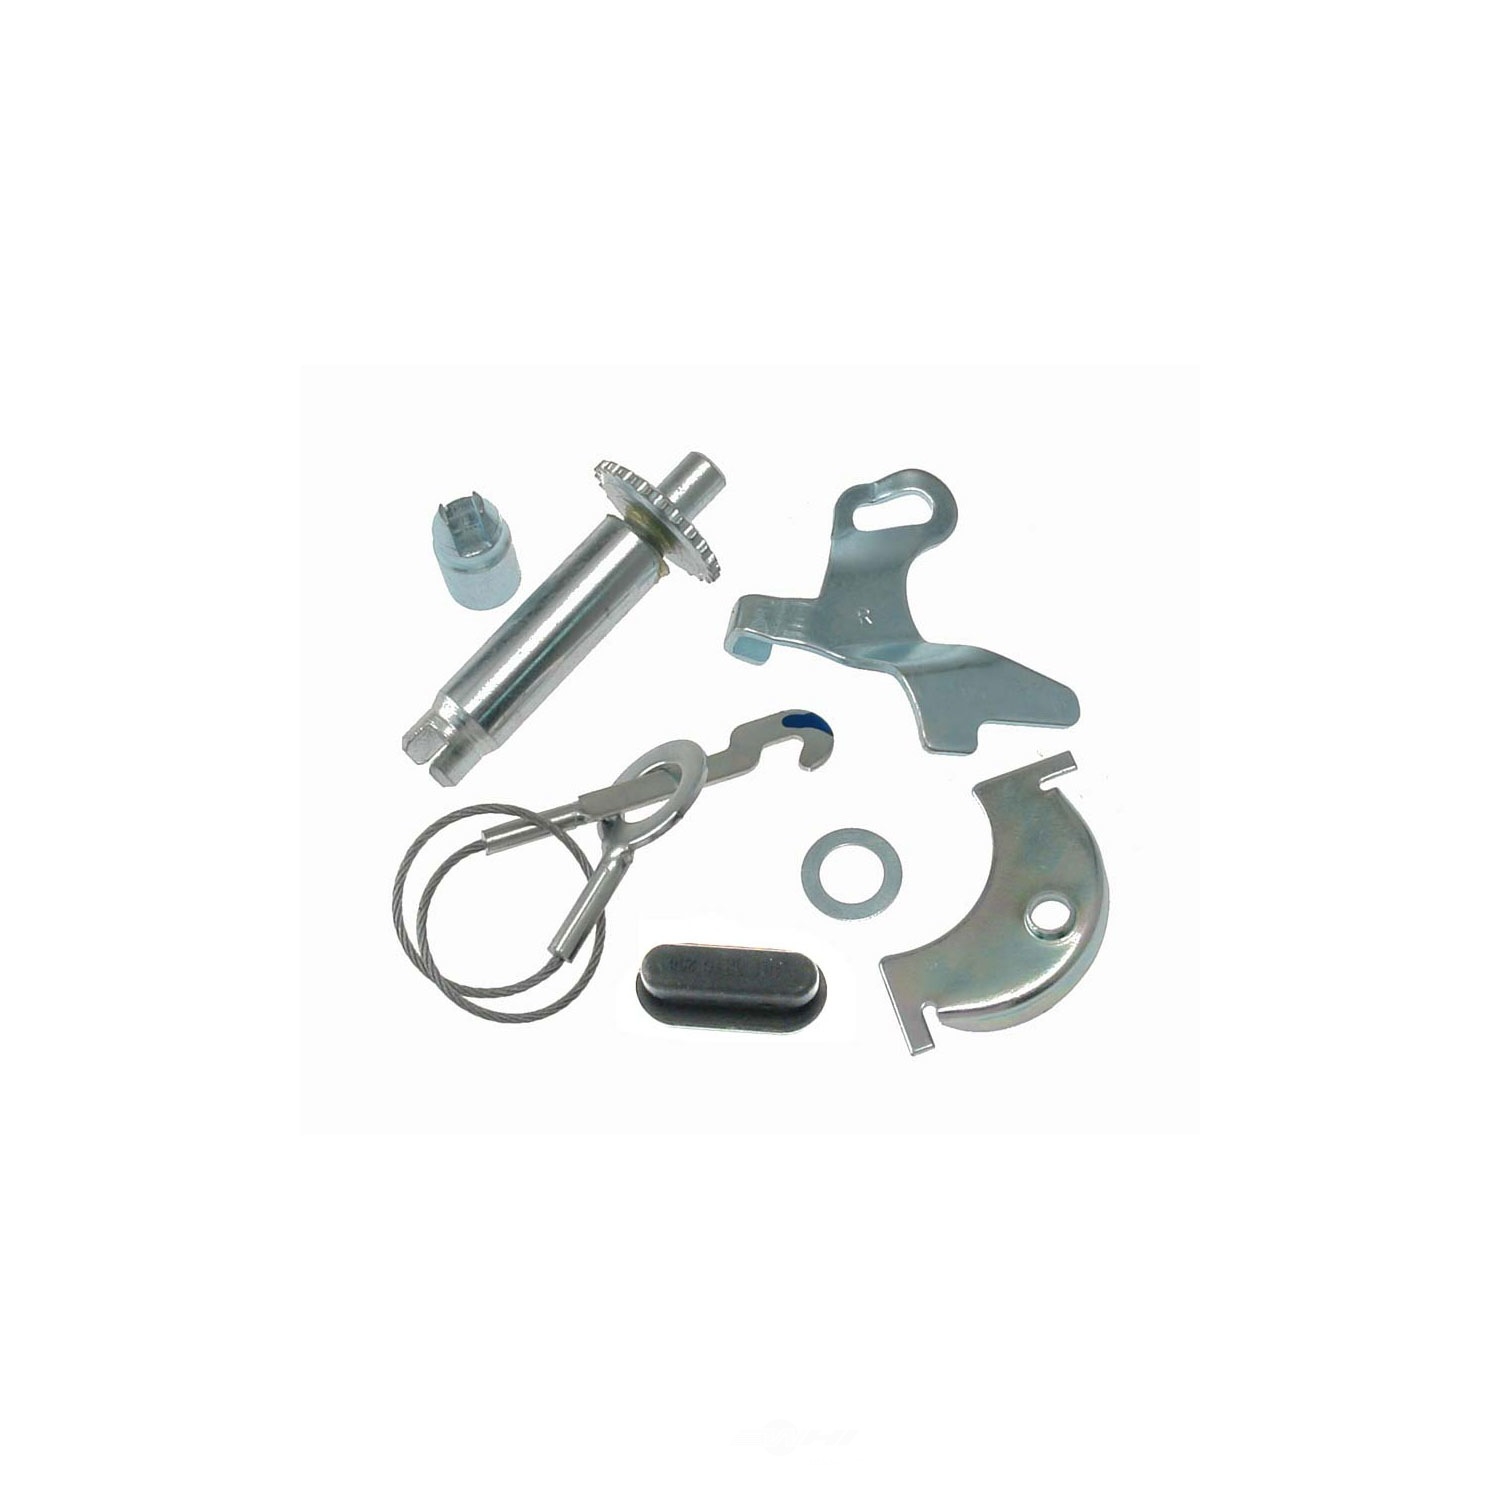 CARLSON QUALITY BRAKE PARTS - Drum Brake Self-Adjuster Repair Kit (Rear Right) - CRL H2515